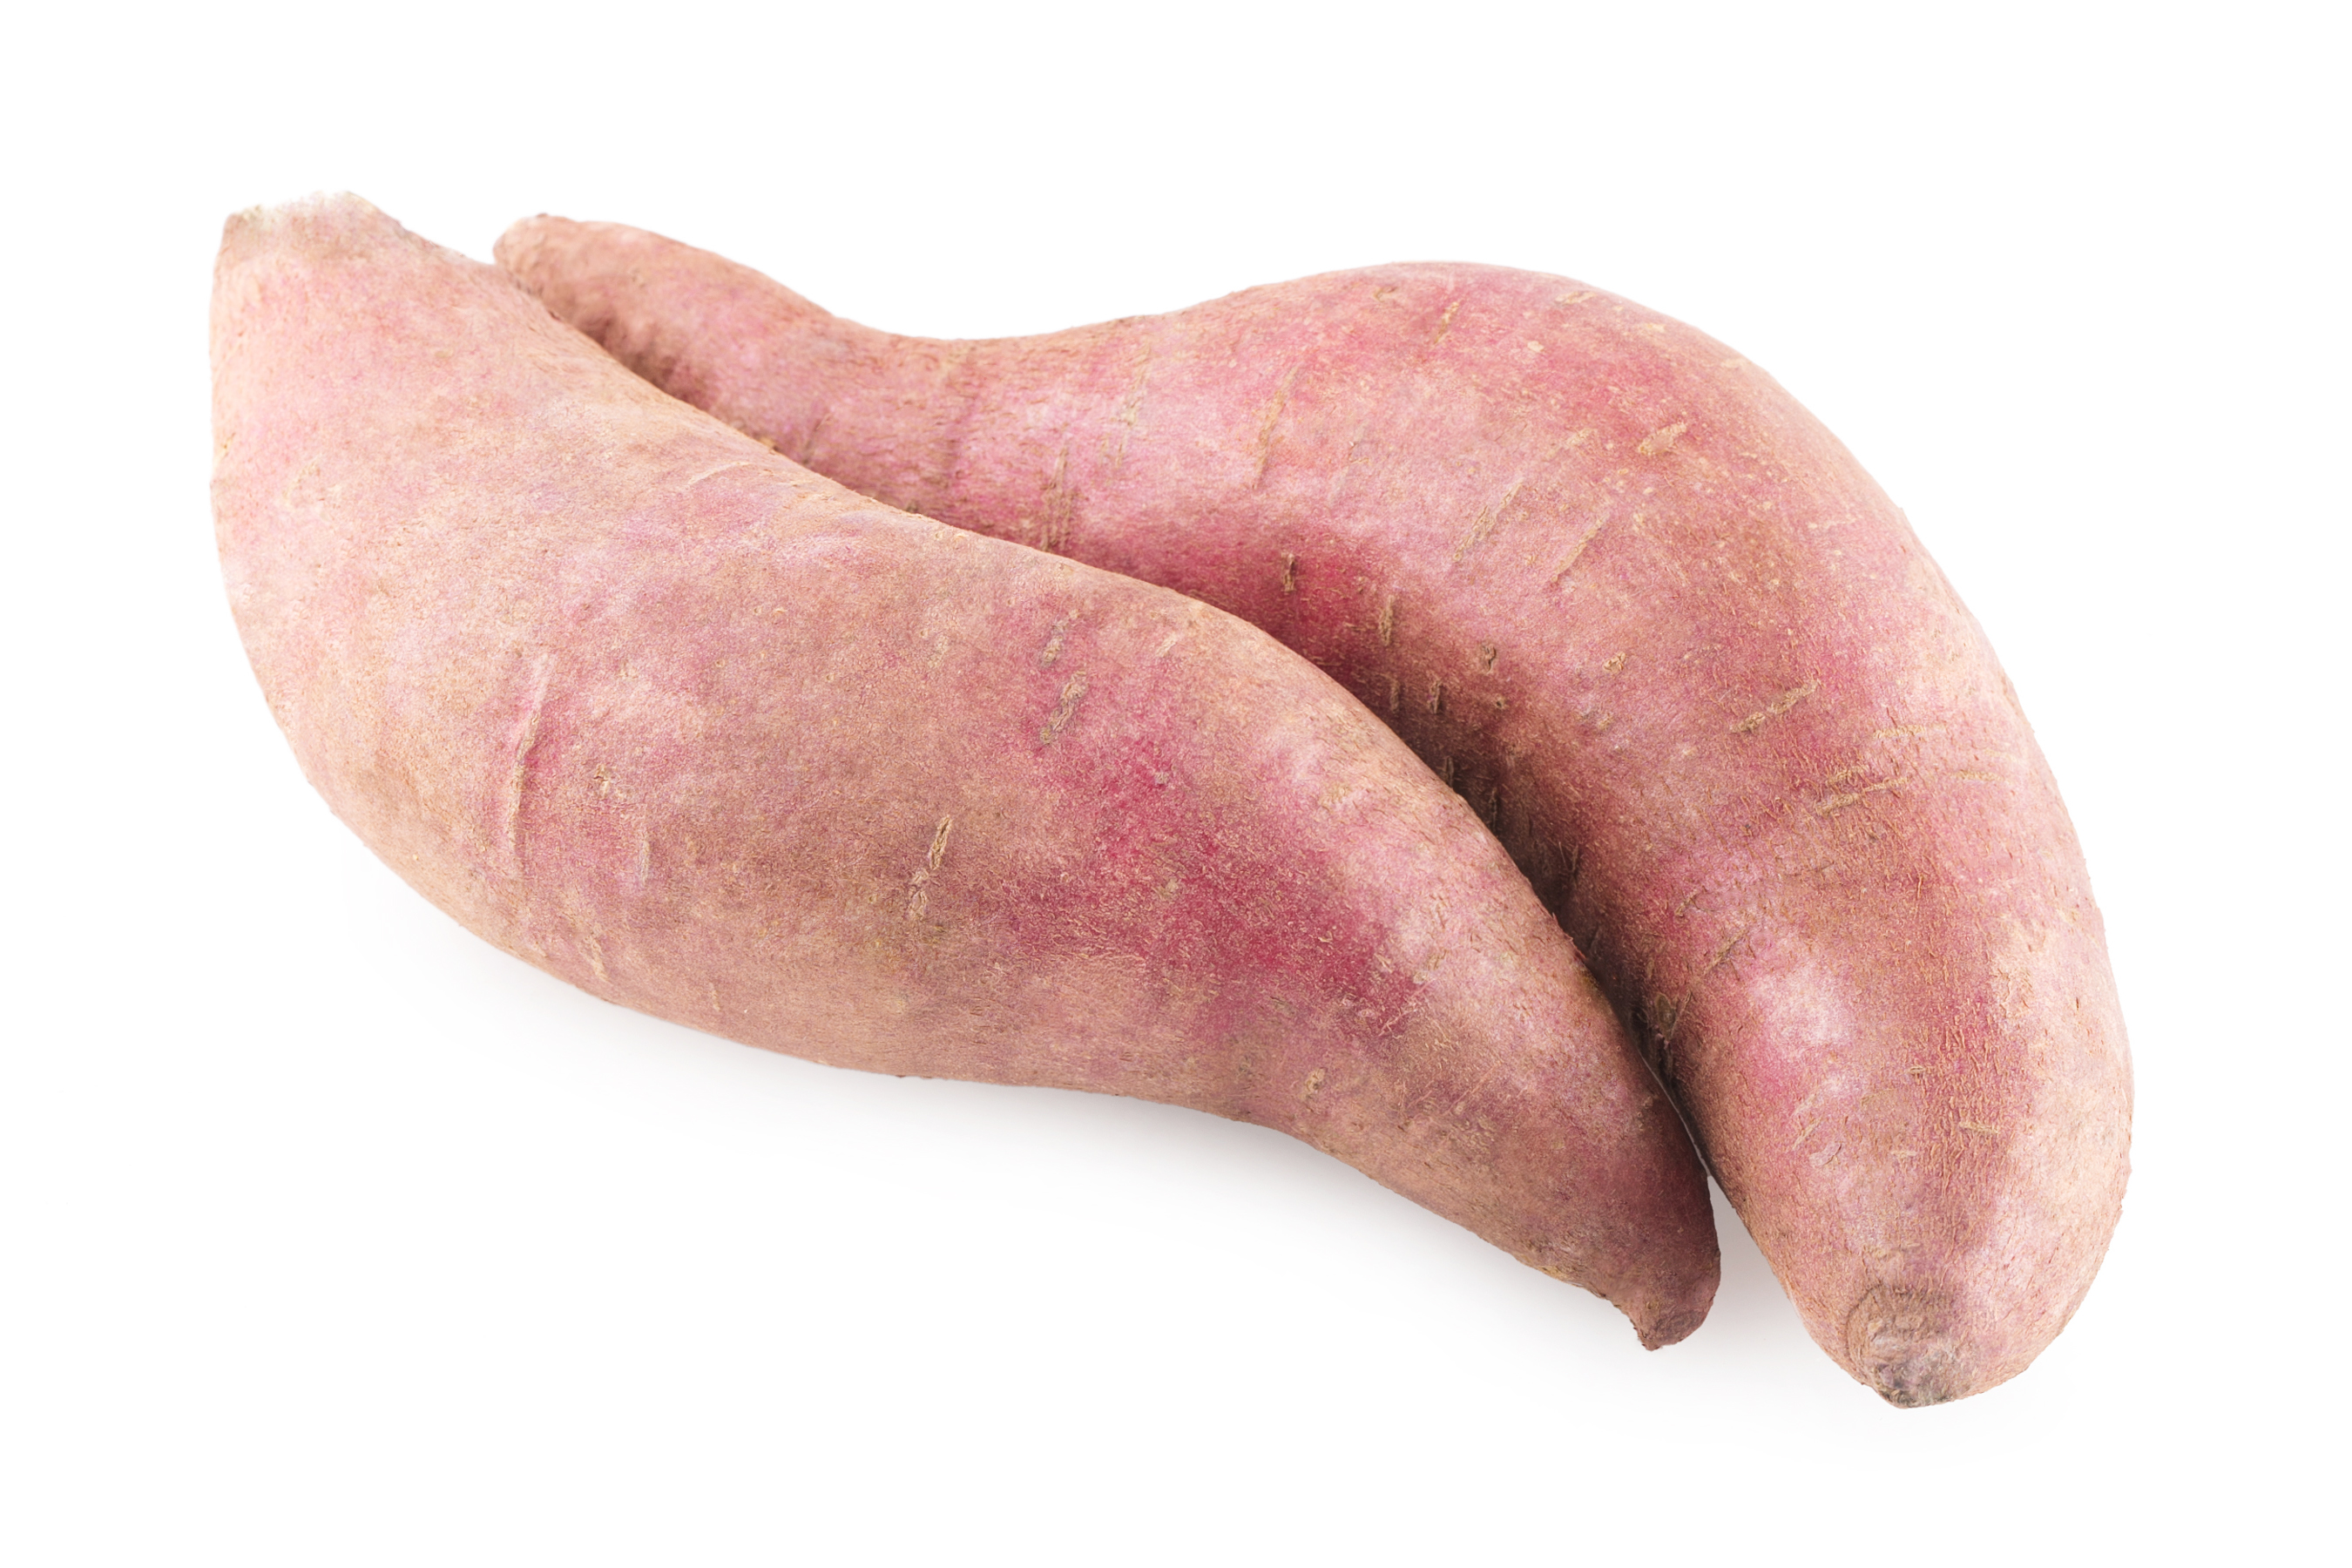 Sweet potatoes, Single, Snack, Starch, Root, HQ Photo